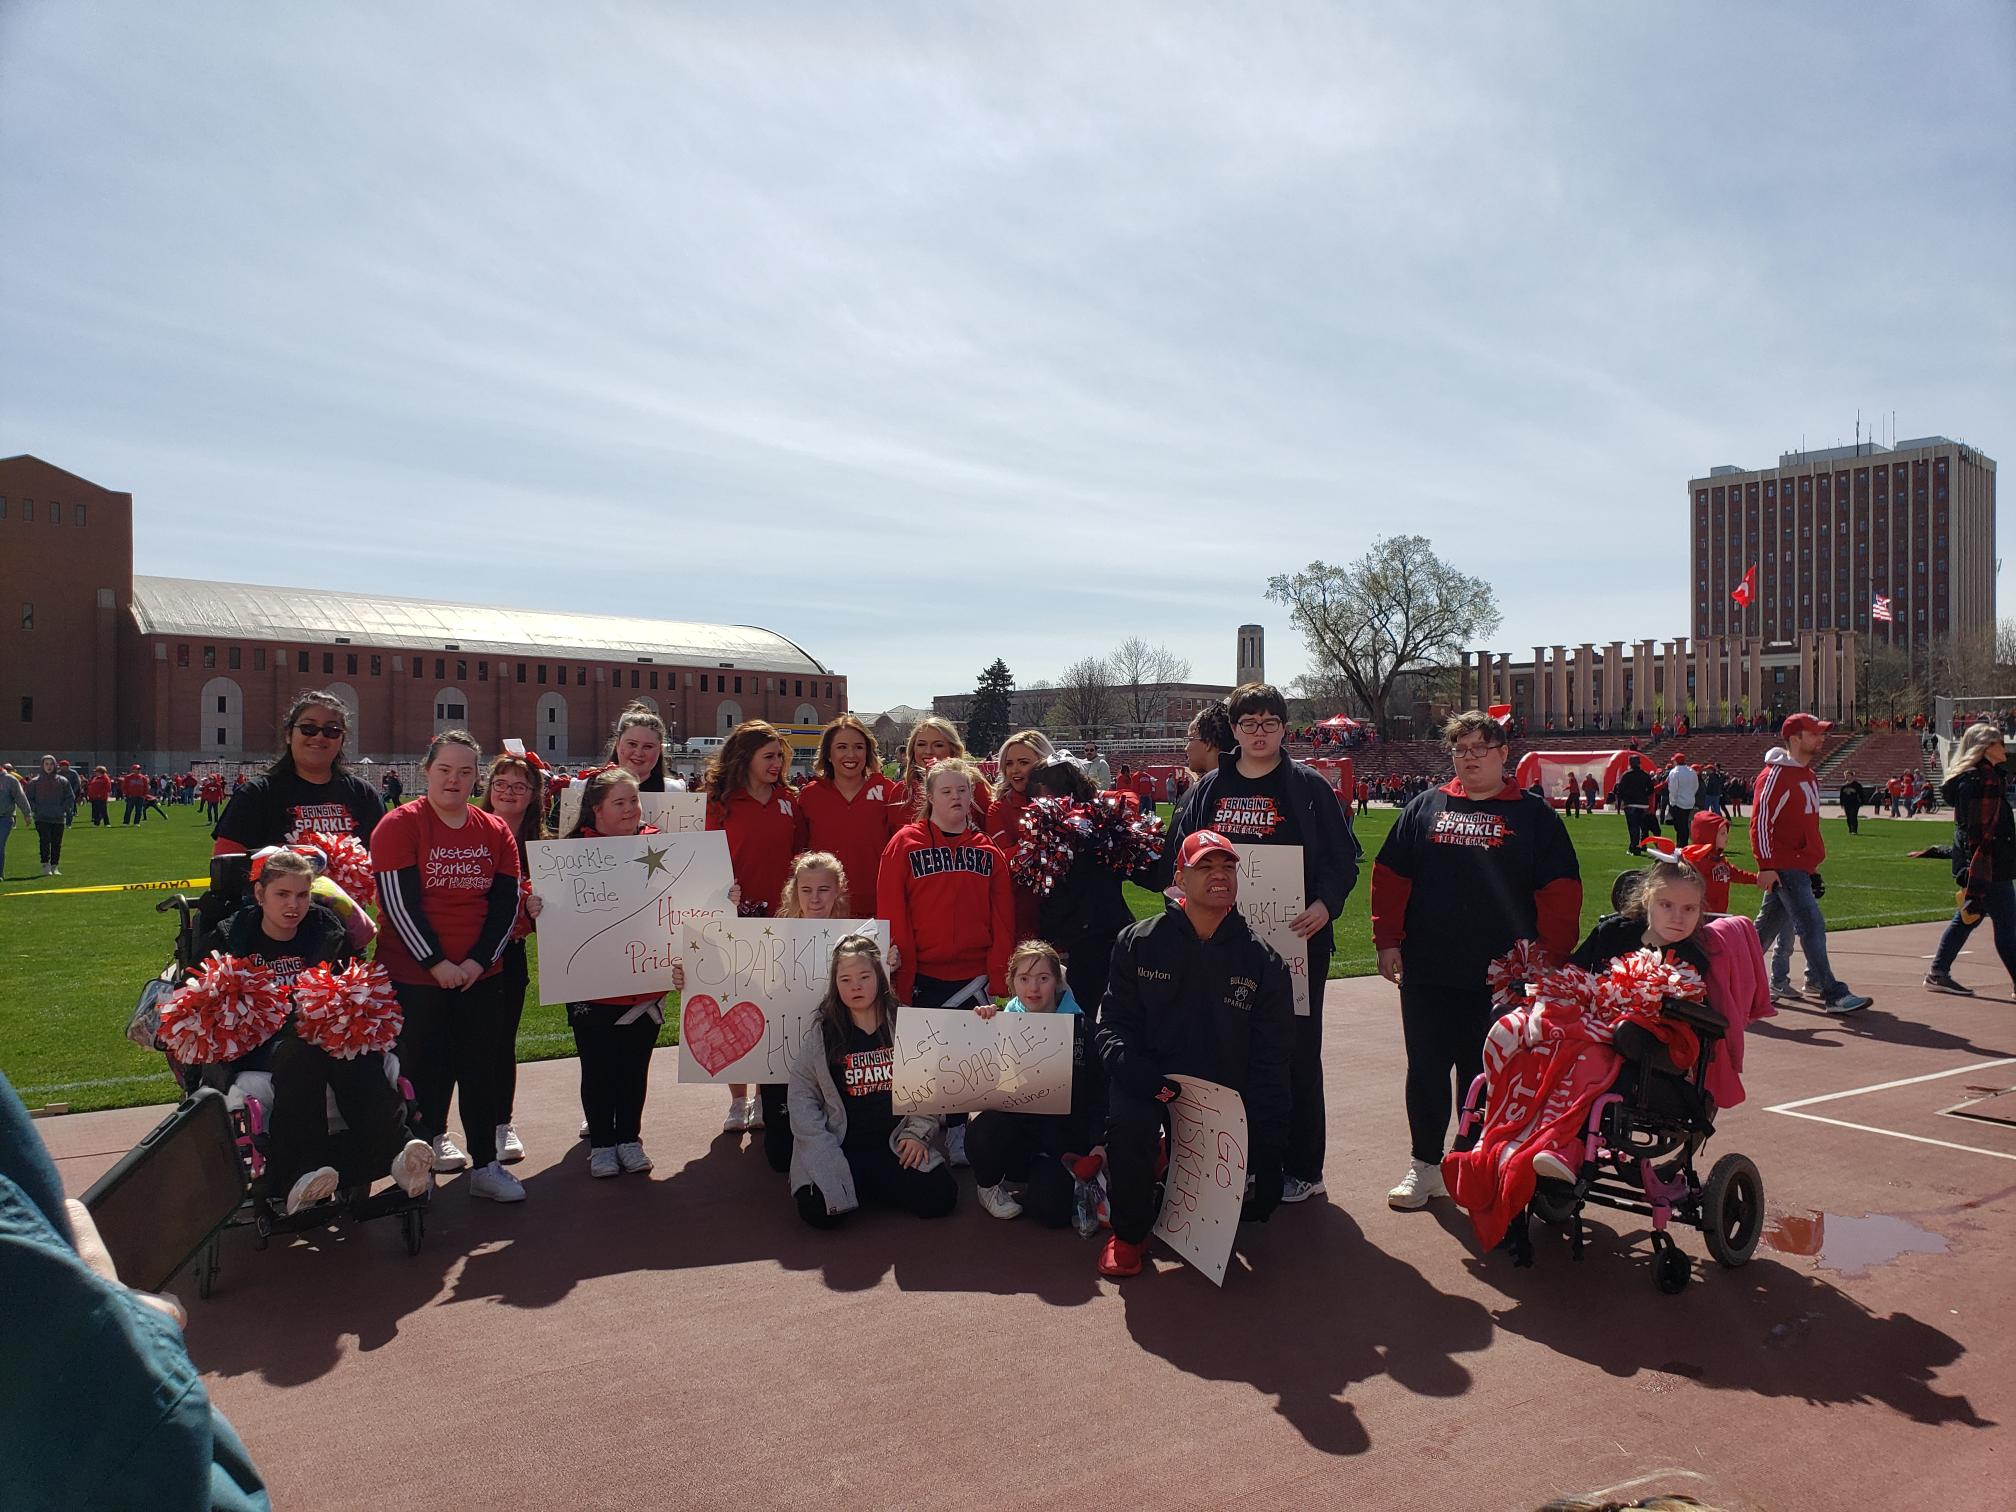 PLCS Sparkles Cheer Squad perform at Husker spring game